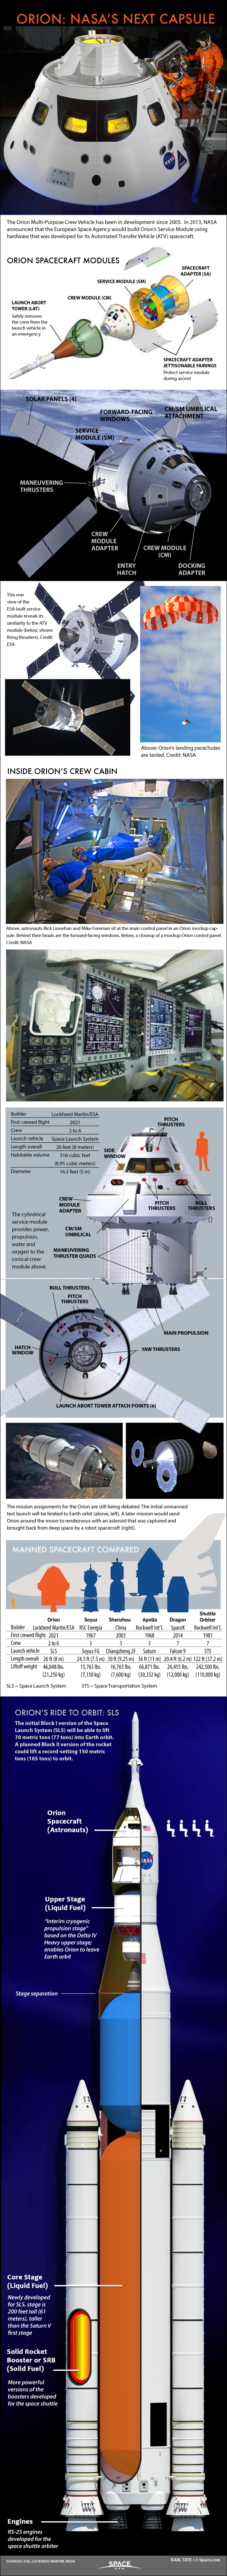 Orion Explained: NASA's Multi-Purpose Crew Vehicle (Infographic)